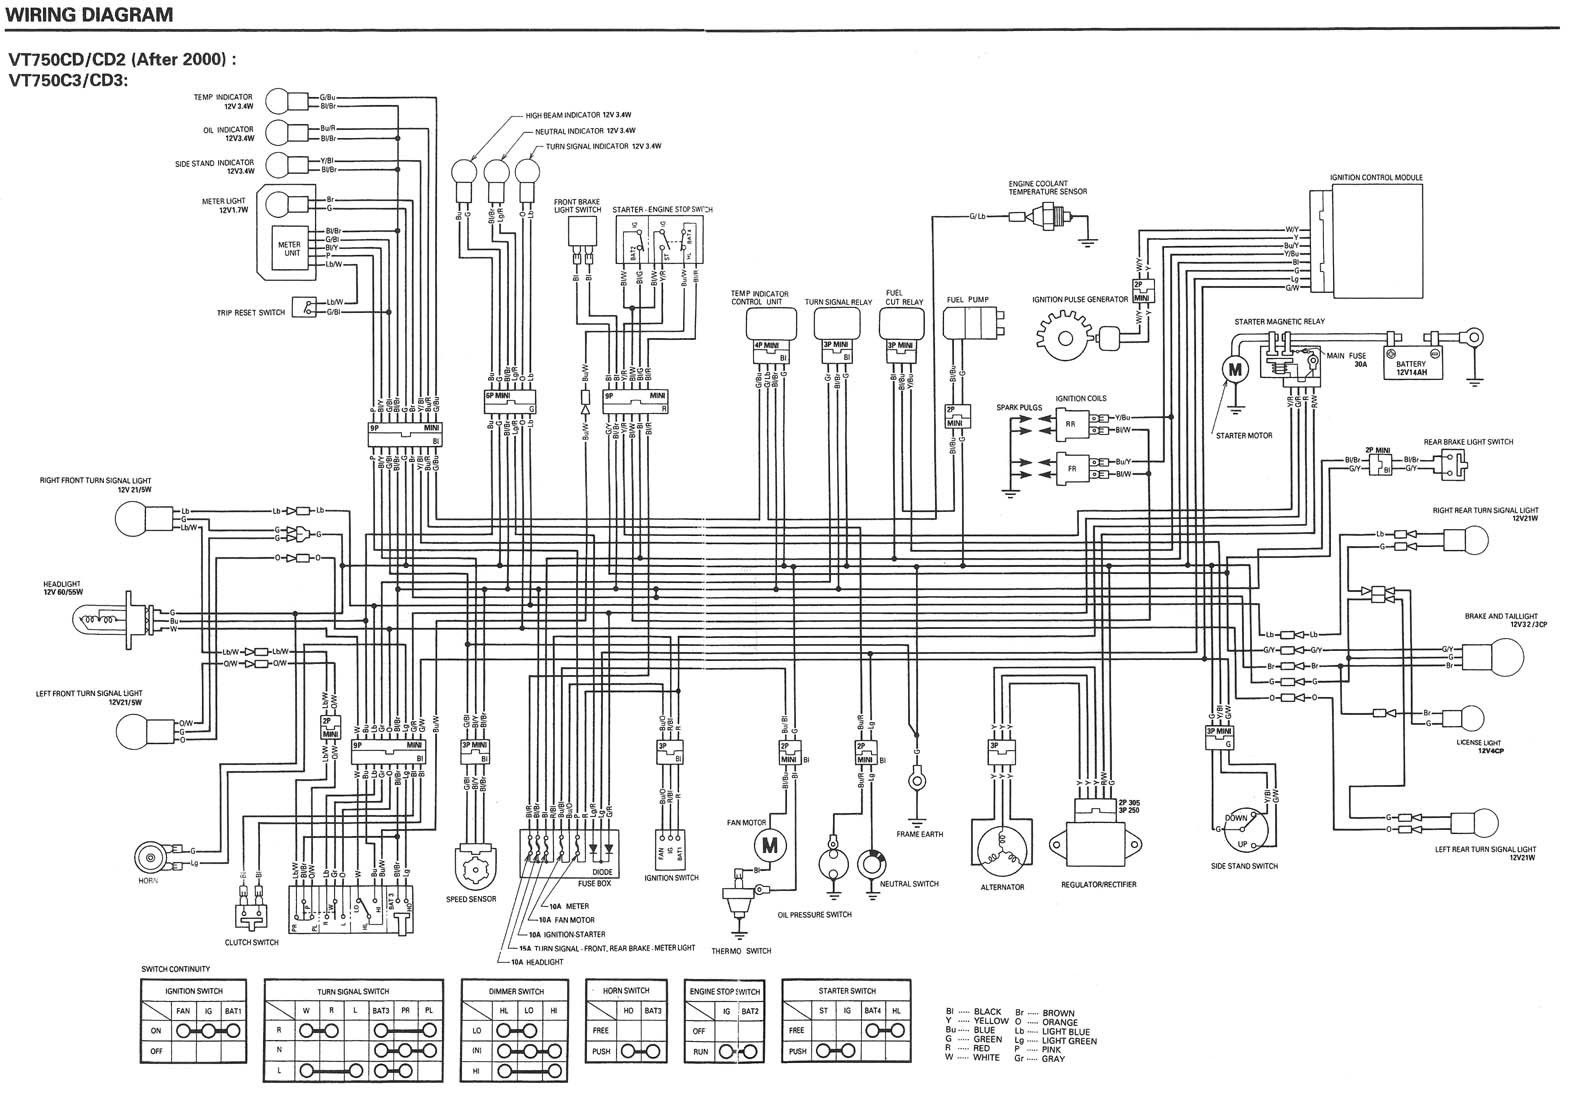 Winnebago View Wiring Diagrams | Wiring Diagram on winnebago electrical diagrams, winnebago floor plans, winnebago lesharo turbo diesel, winnebago wiring coax, winnebago plumbing diagrams,